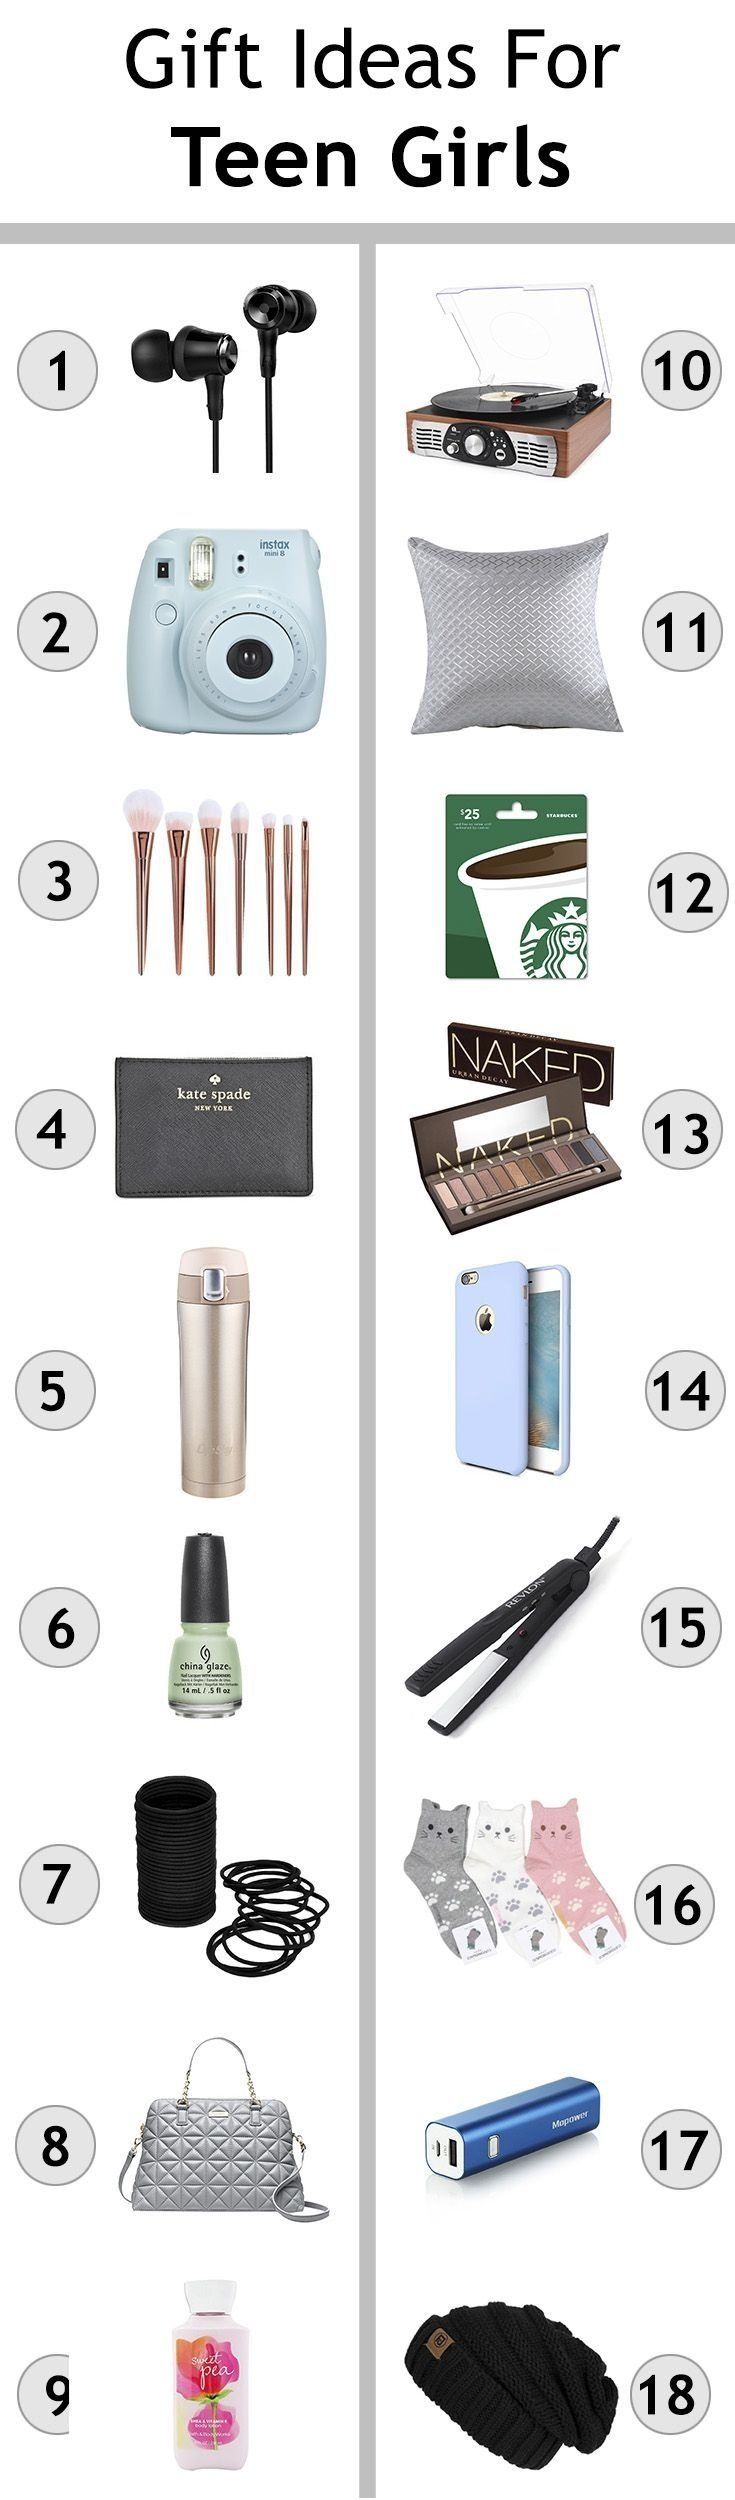 10 Lovely Gift Ideas For A 13 Yr Old Girl